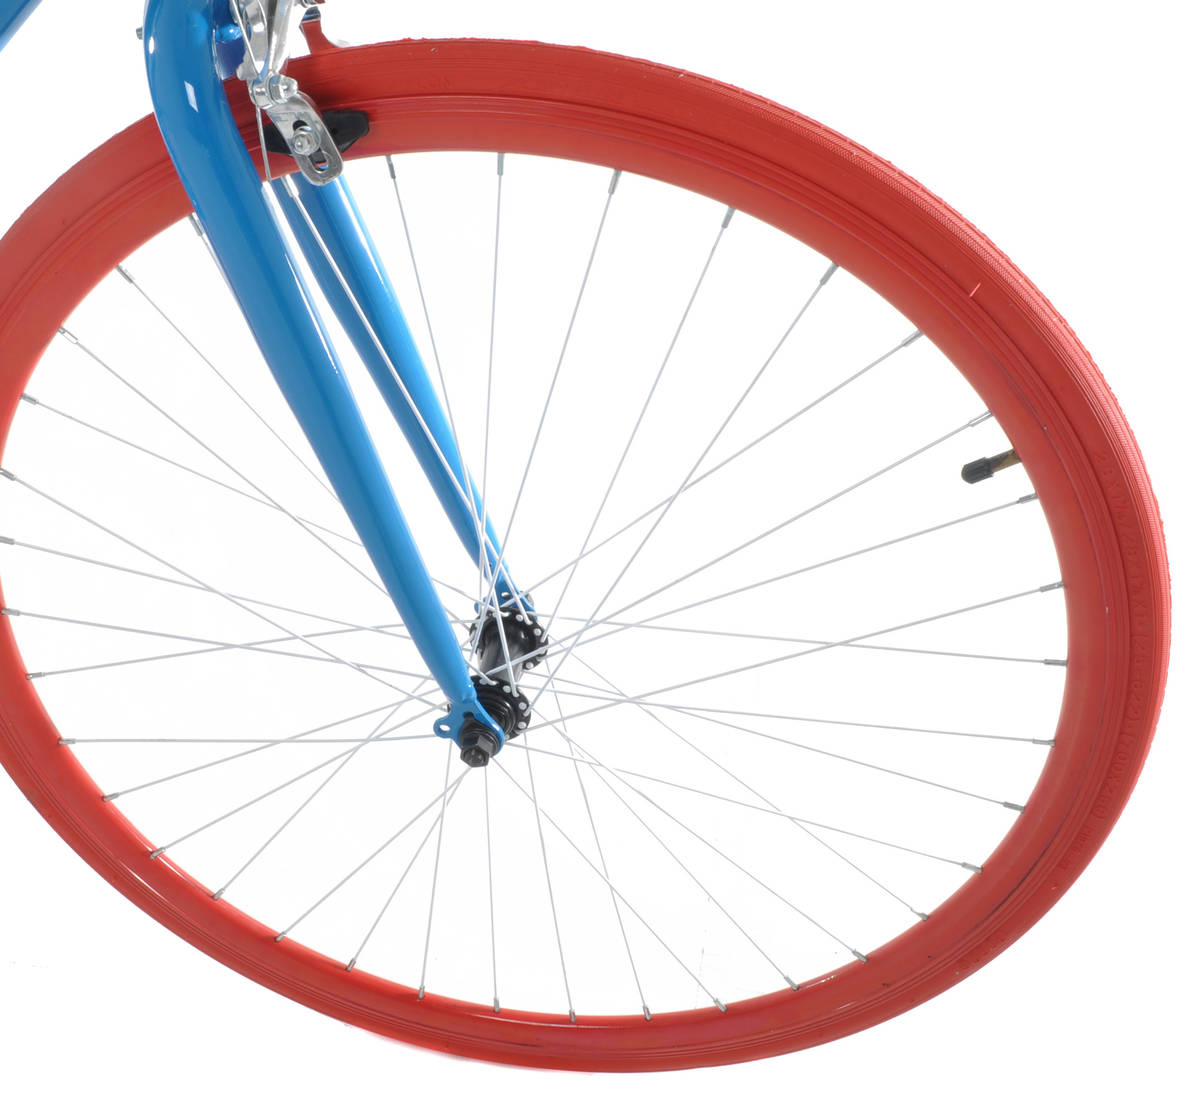 products/700-fixie-x__02_1.jpg